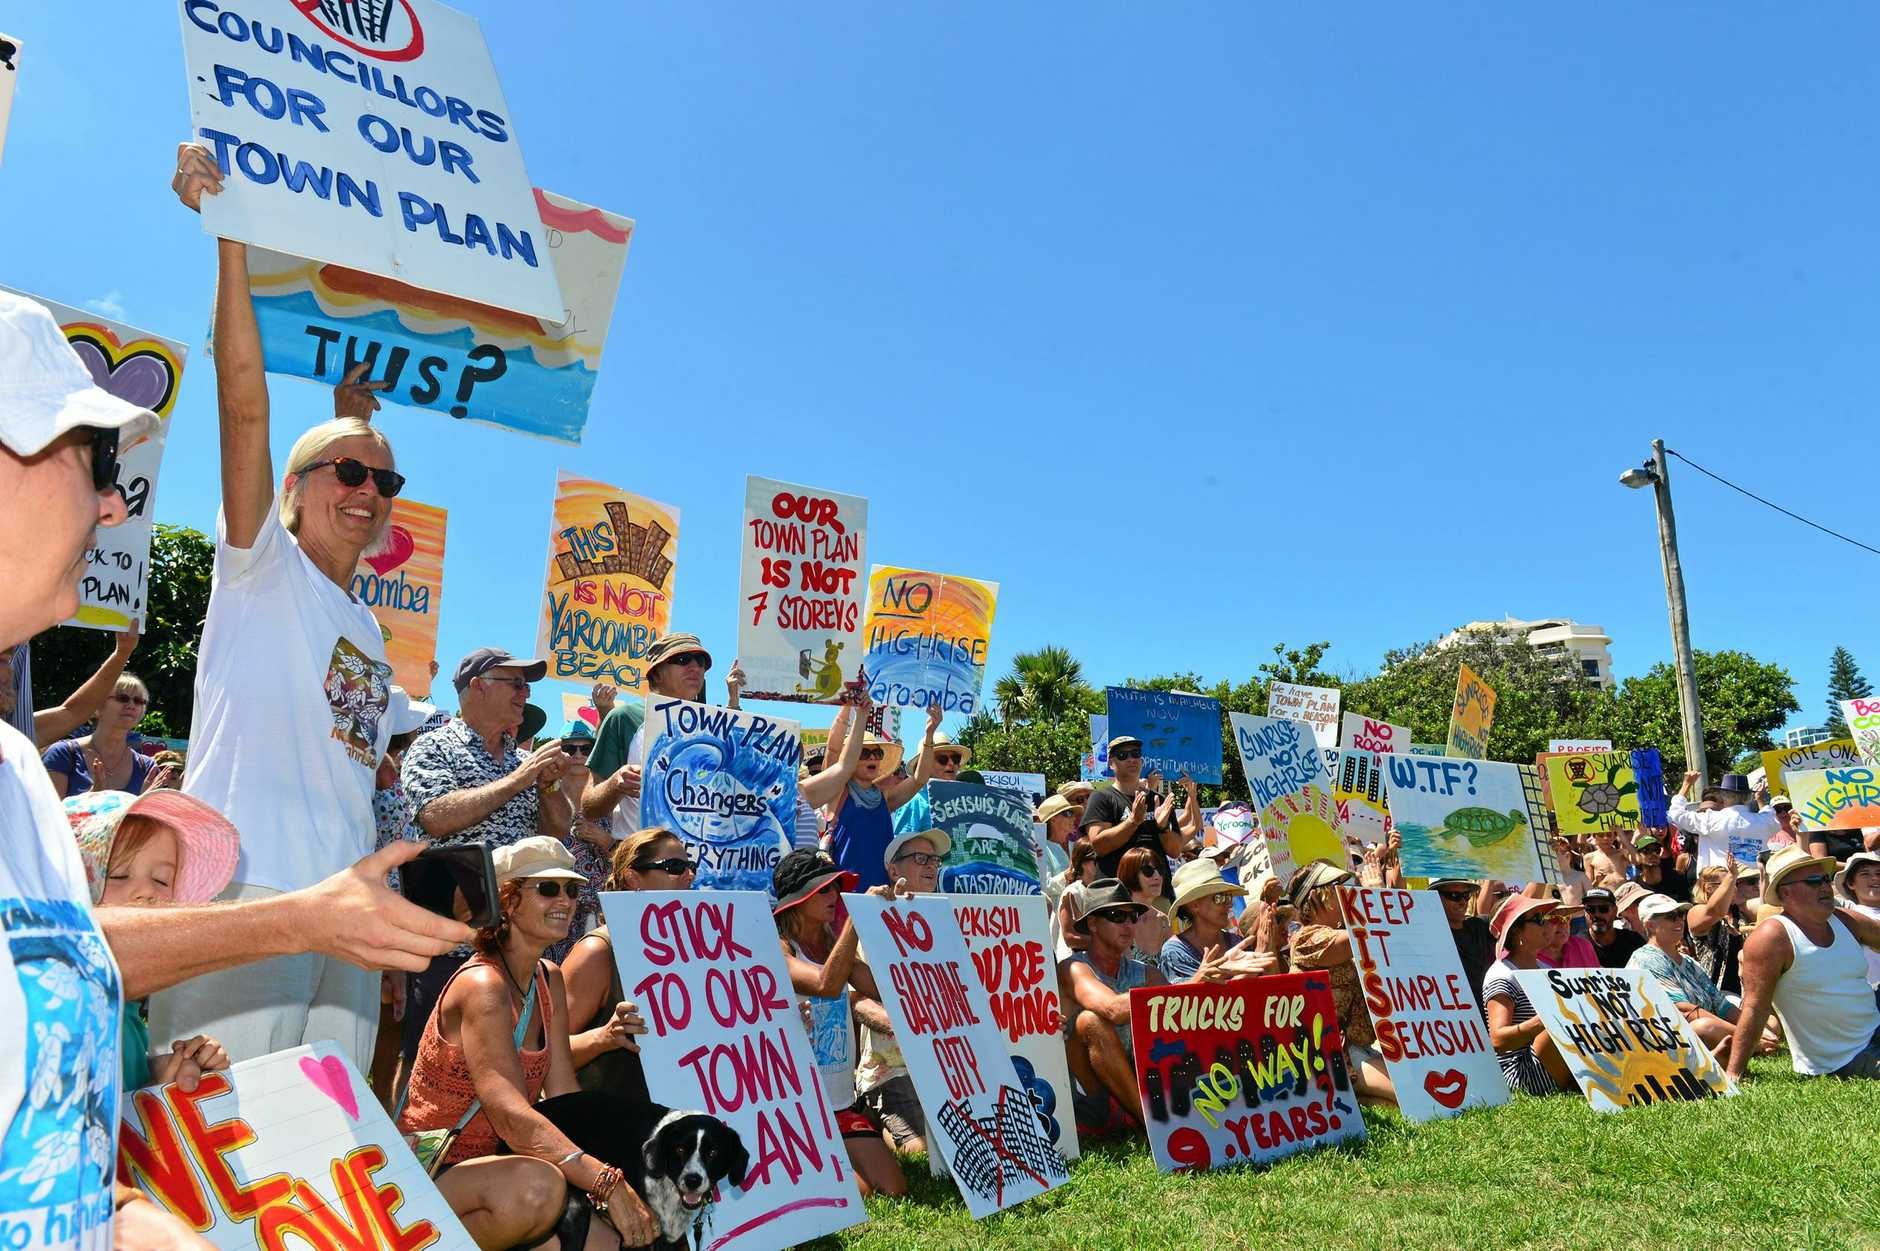 Protesters turned out in hundreds at Tickle Park, Coolum to campaign aganst the proposed Sekisui development at Yaroomba.